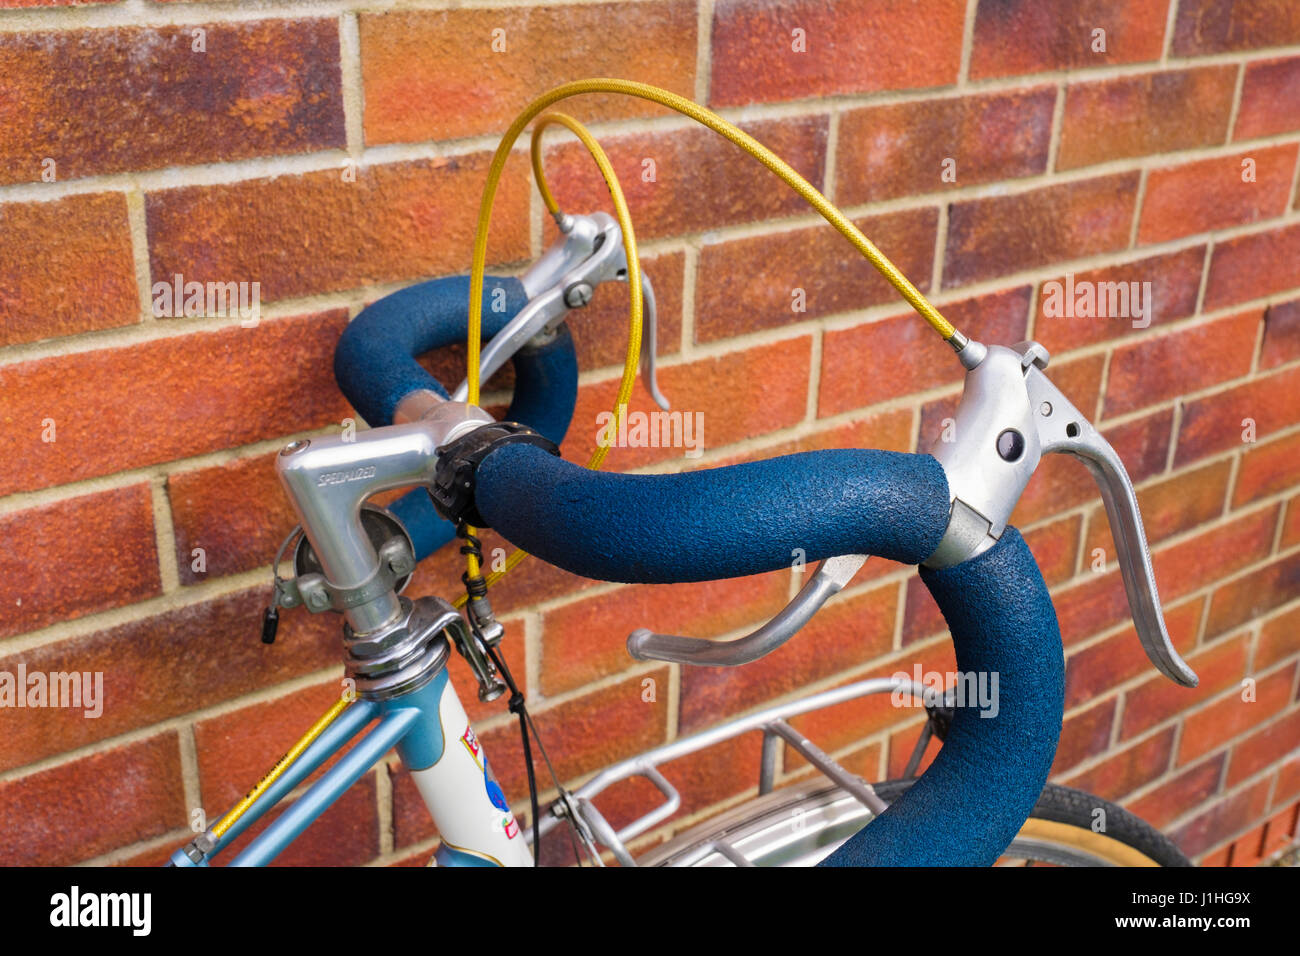 Bicycle with padded classic drop handlebars leaning up against a brick wall. UK - Stock Image